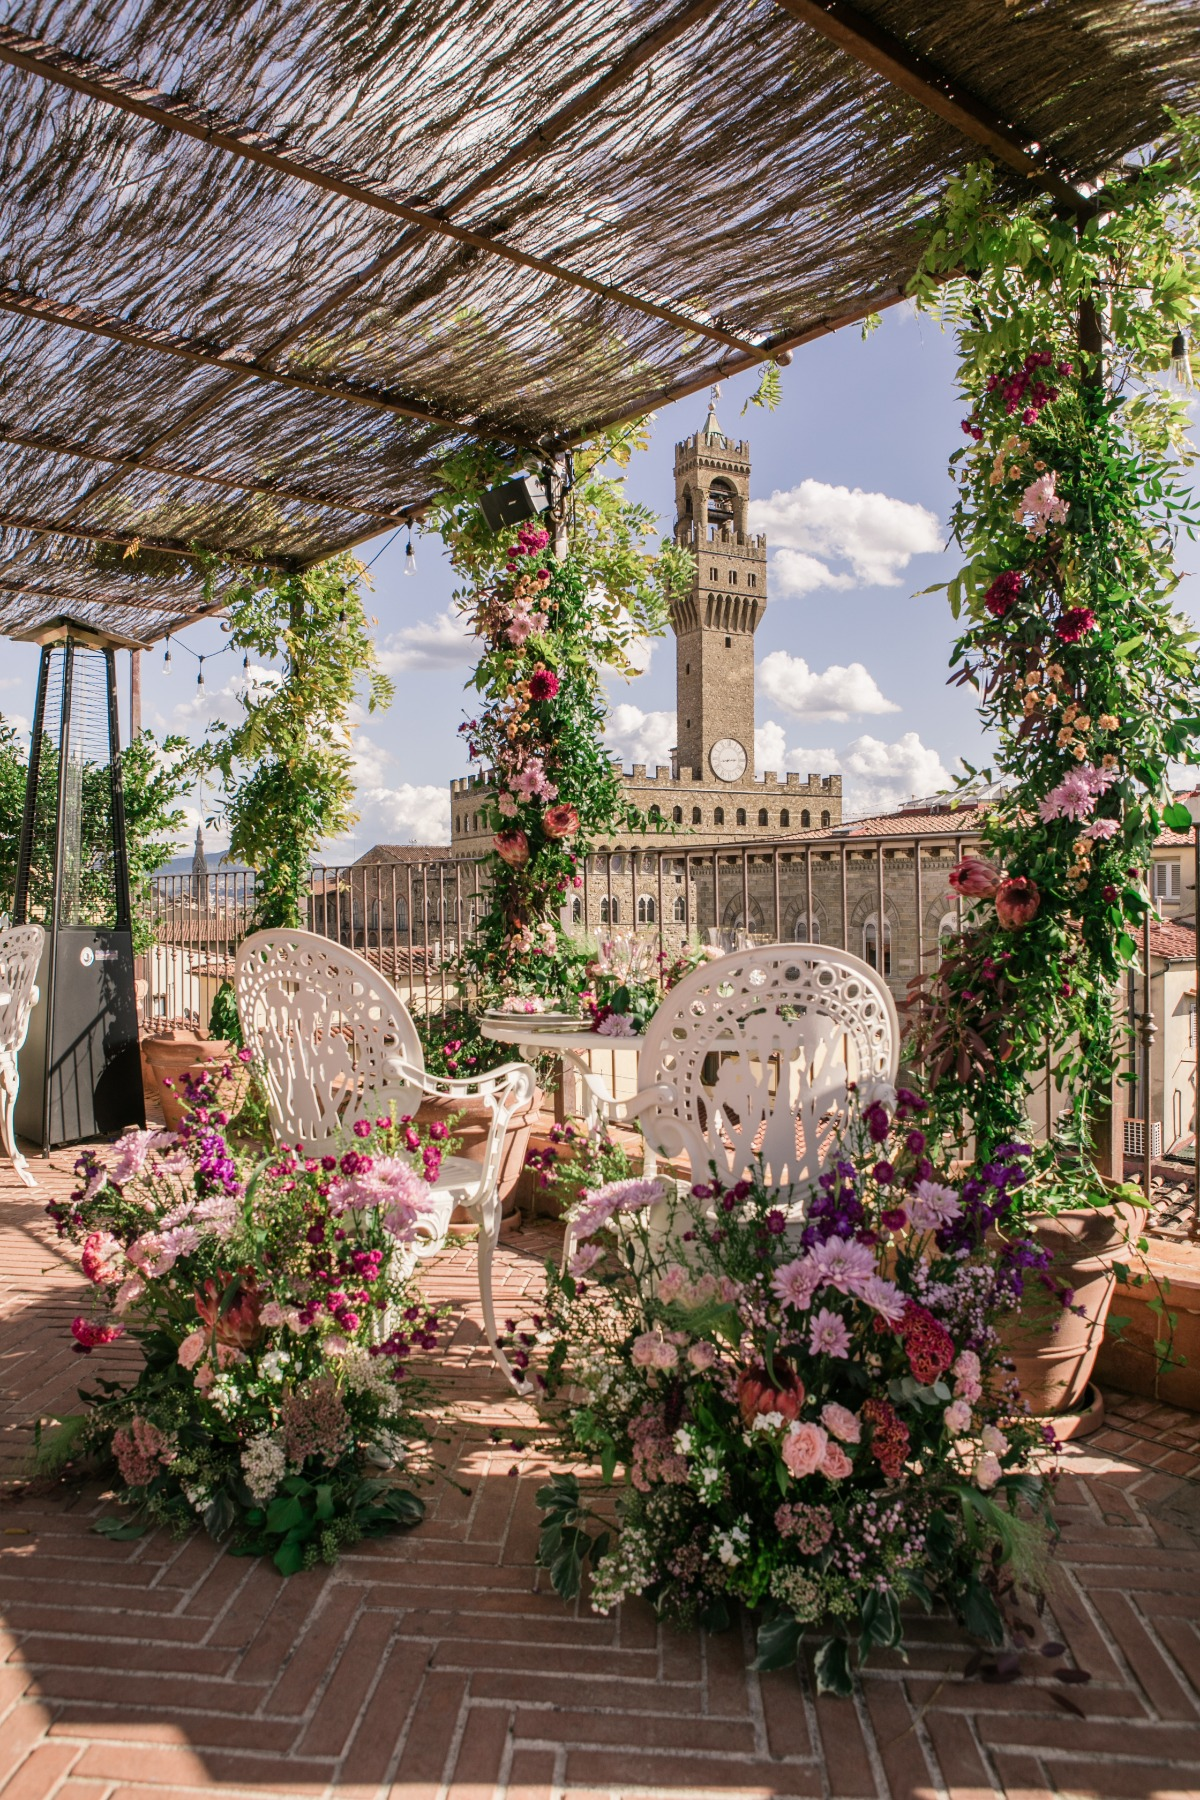 A Stunning Proposal On A Garden Rooftop in Florence Italy